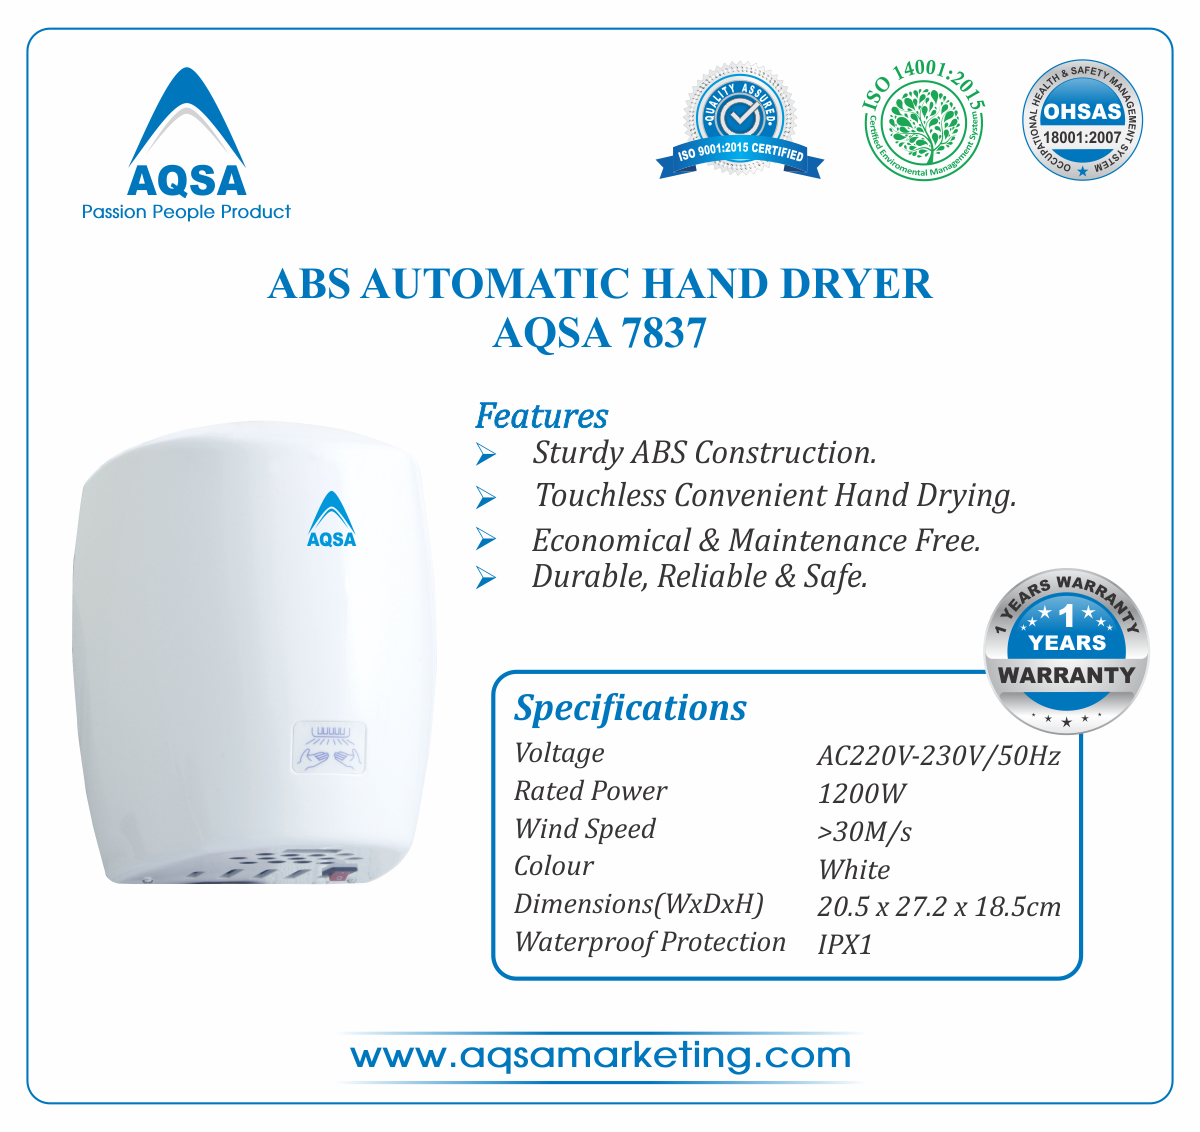 ABS Automatic Hand Dryer AQSA-7837 image